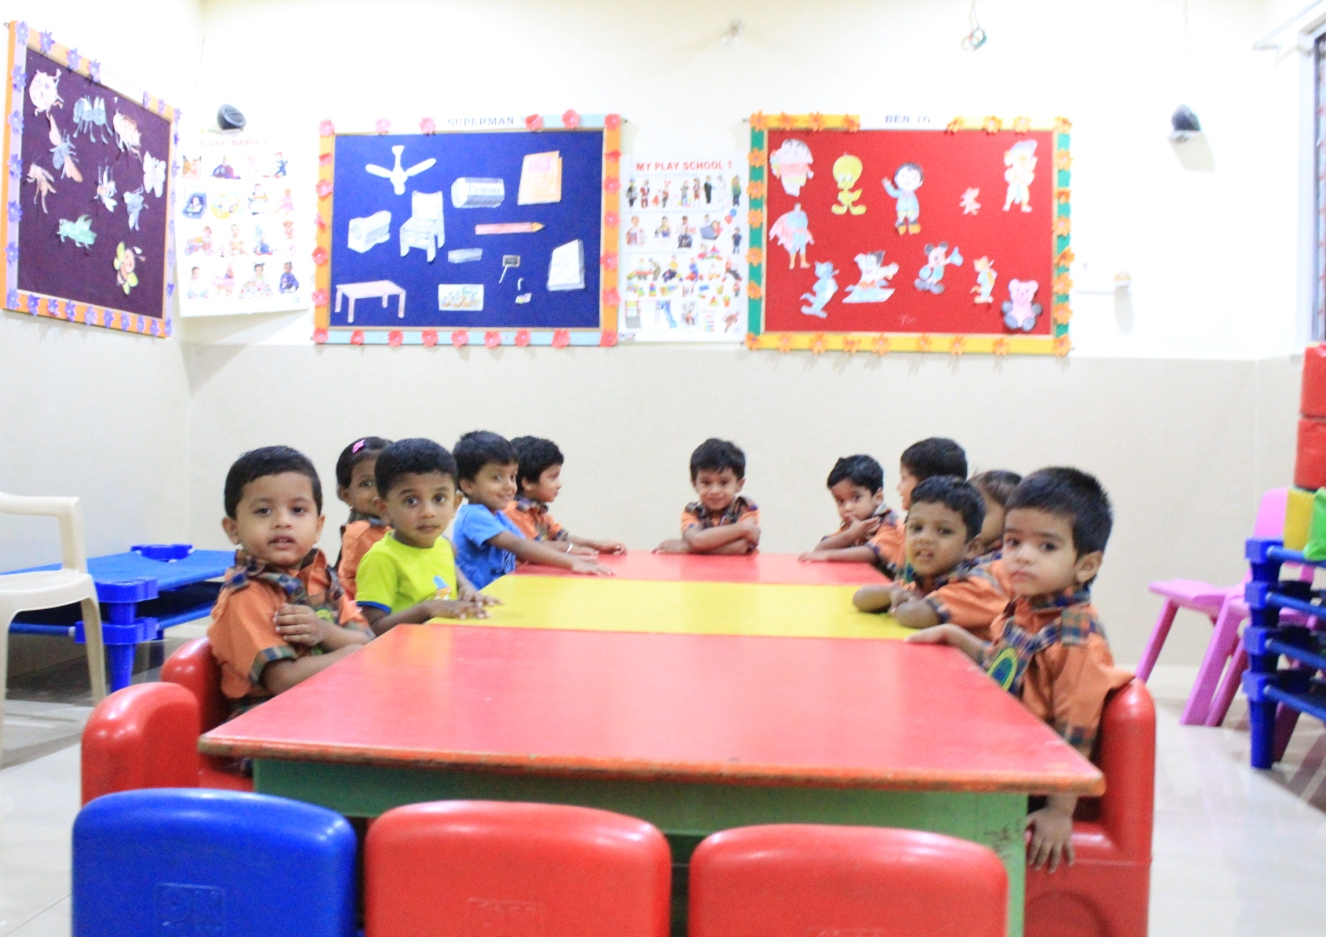 Vidvas Kids School Mla Colony gallery images